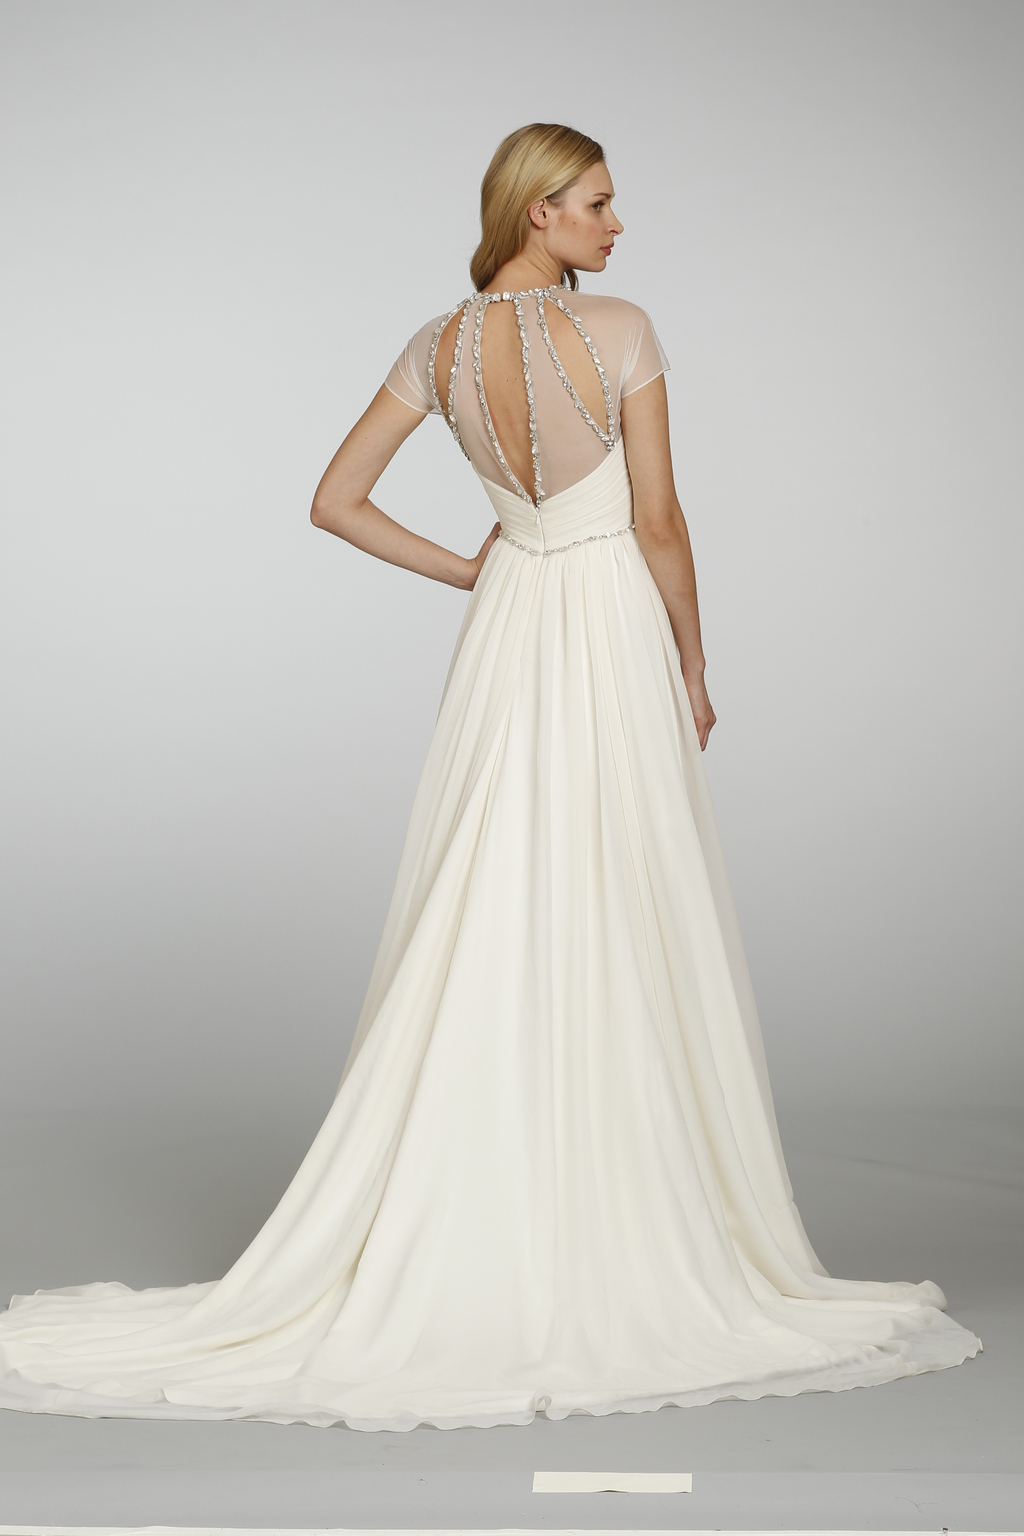 Spring-2013-wedding-dress-hayley-paige-bridal-gowns-6300-b.full